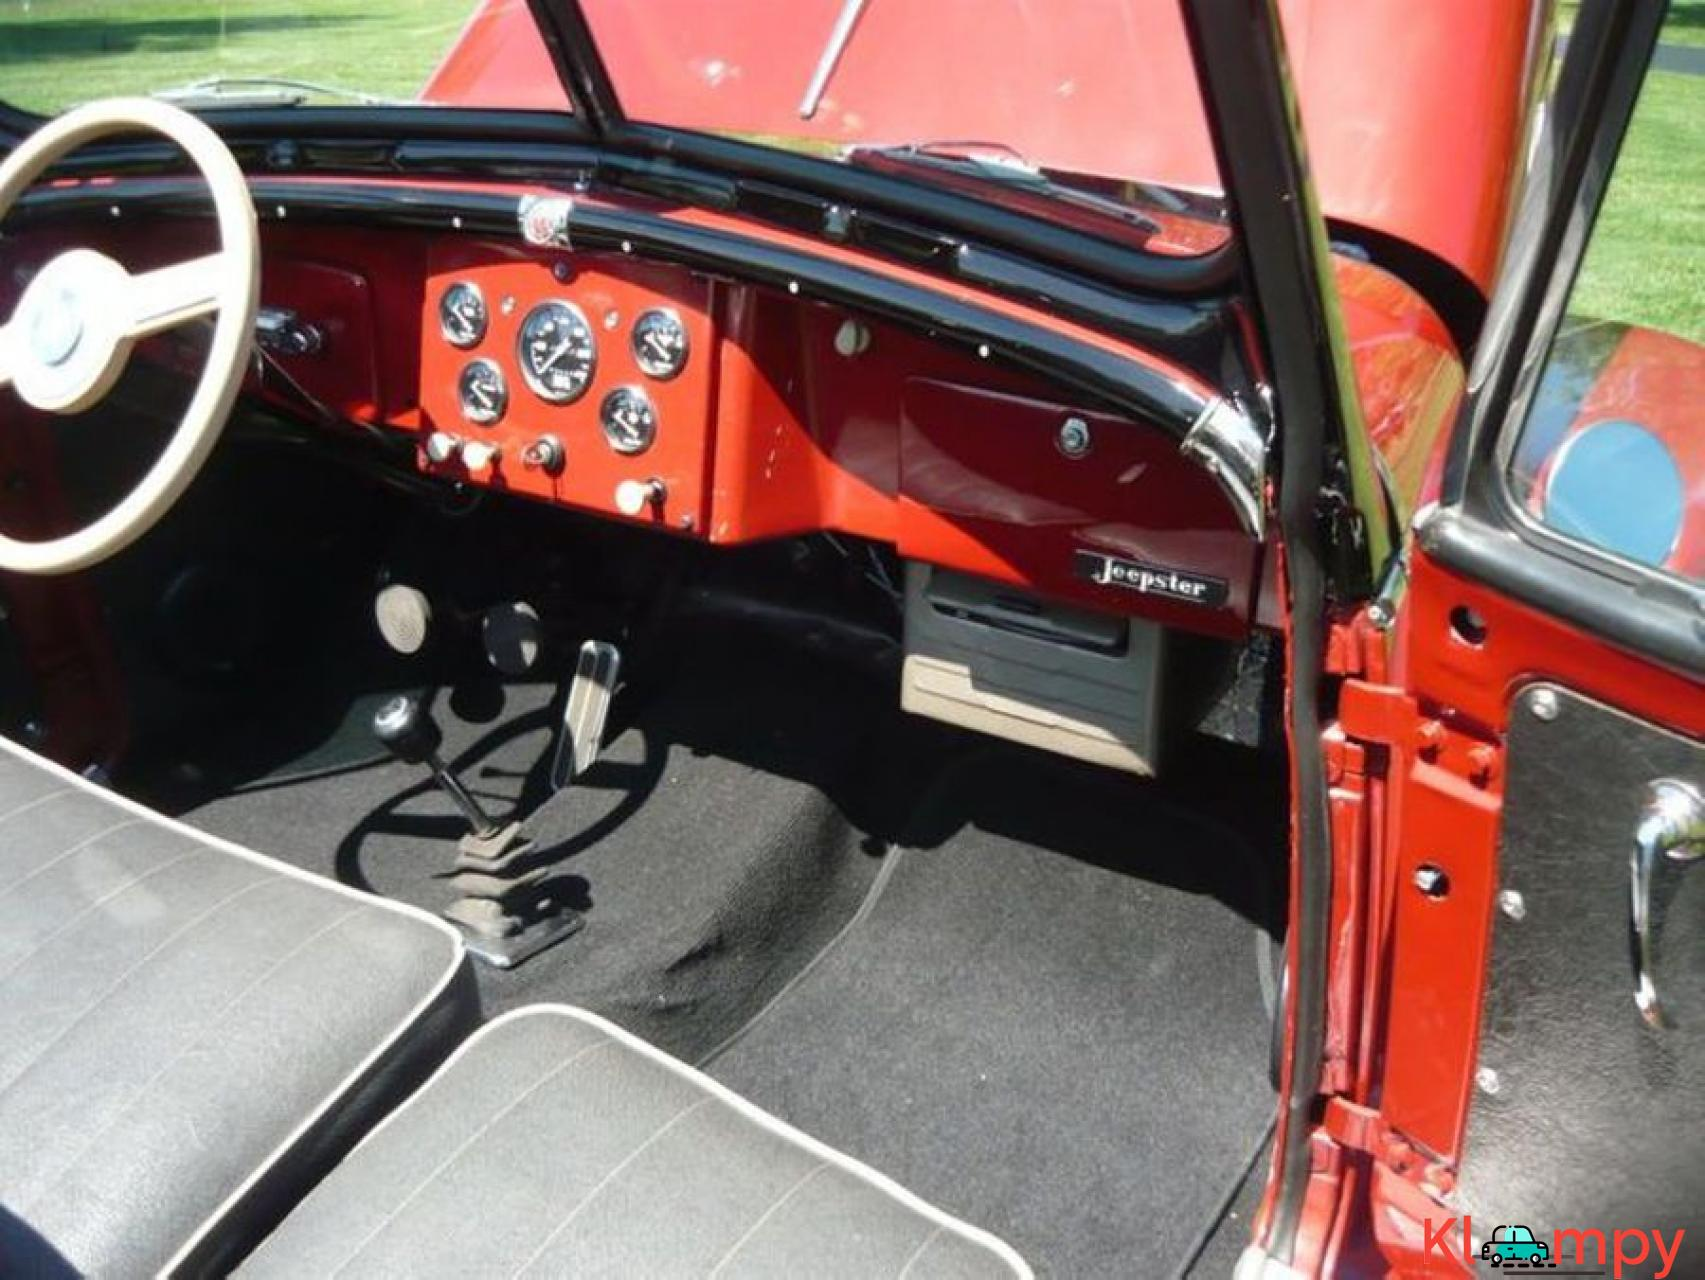 1948 Willys Jeepster Convertible GM 2.5 liter 4 cyl - 15/16